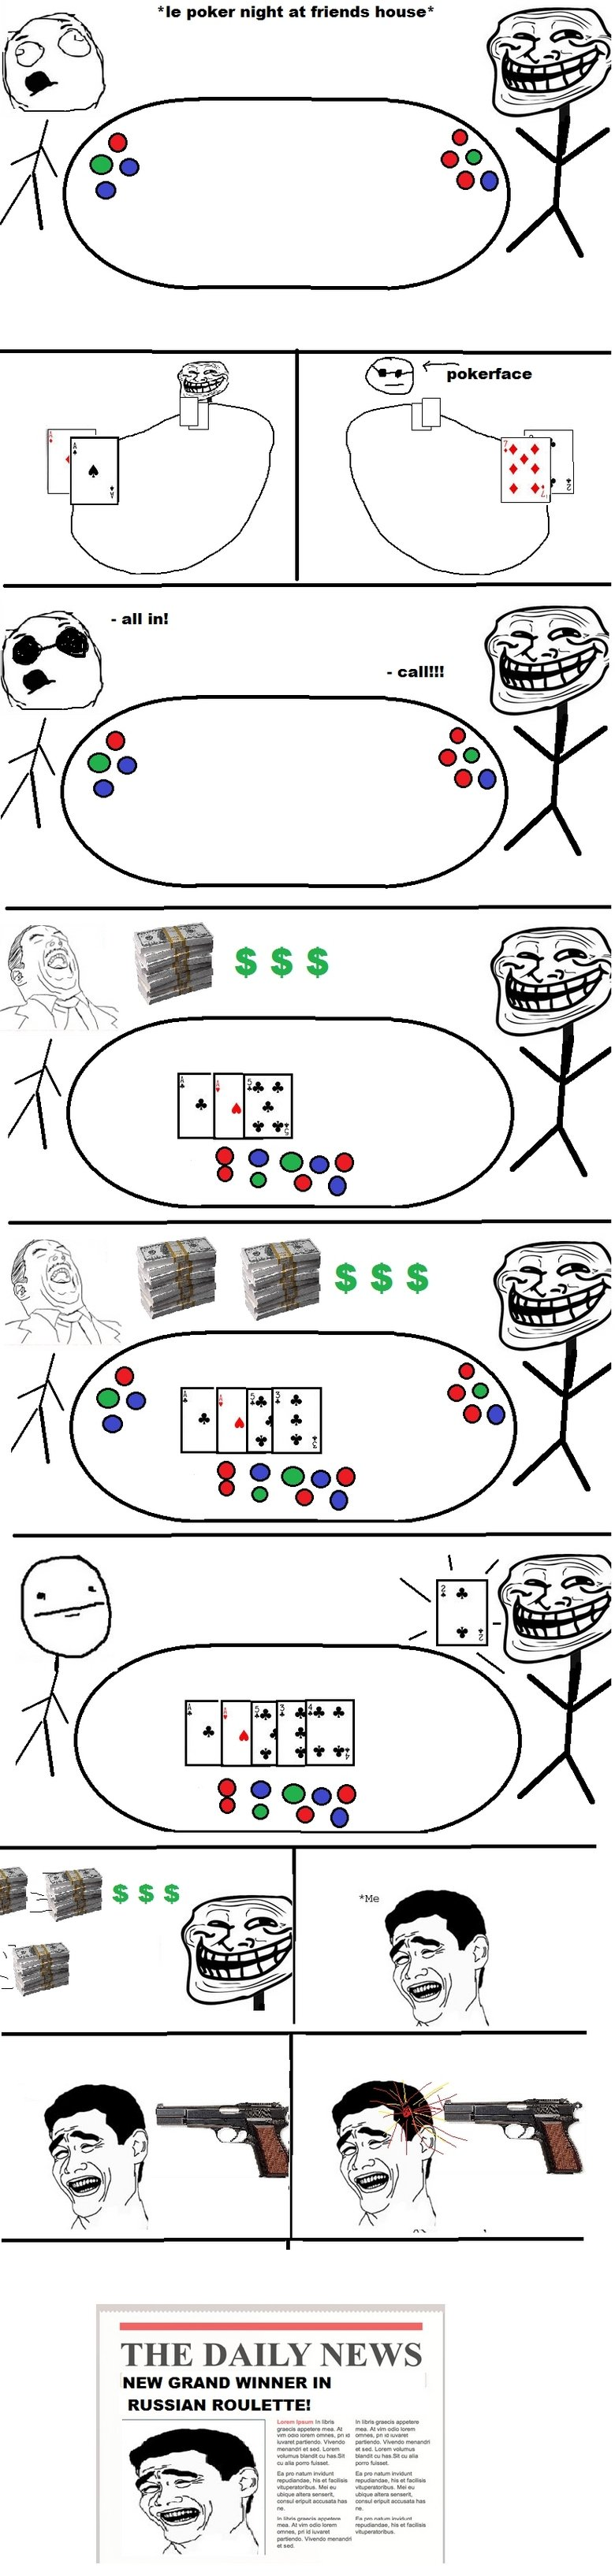 Poker trolling. Come on, just one time, just. one. time..